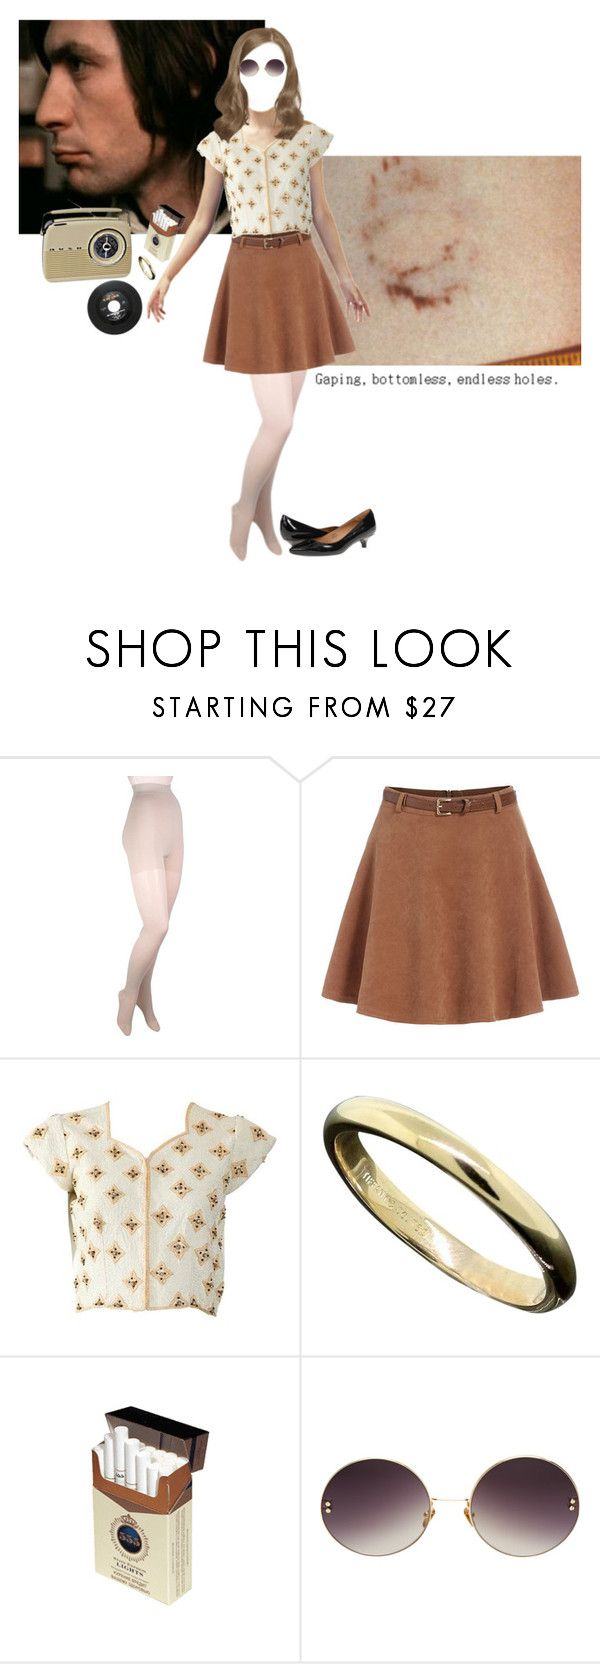 """her first everything"" by magickofthelema ❤ liked on Polyvore featuring Gabrialla, Tiffany & Co., Linda Farrow, Isaac Mizrahi and vintage"